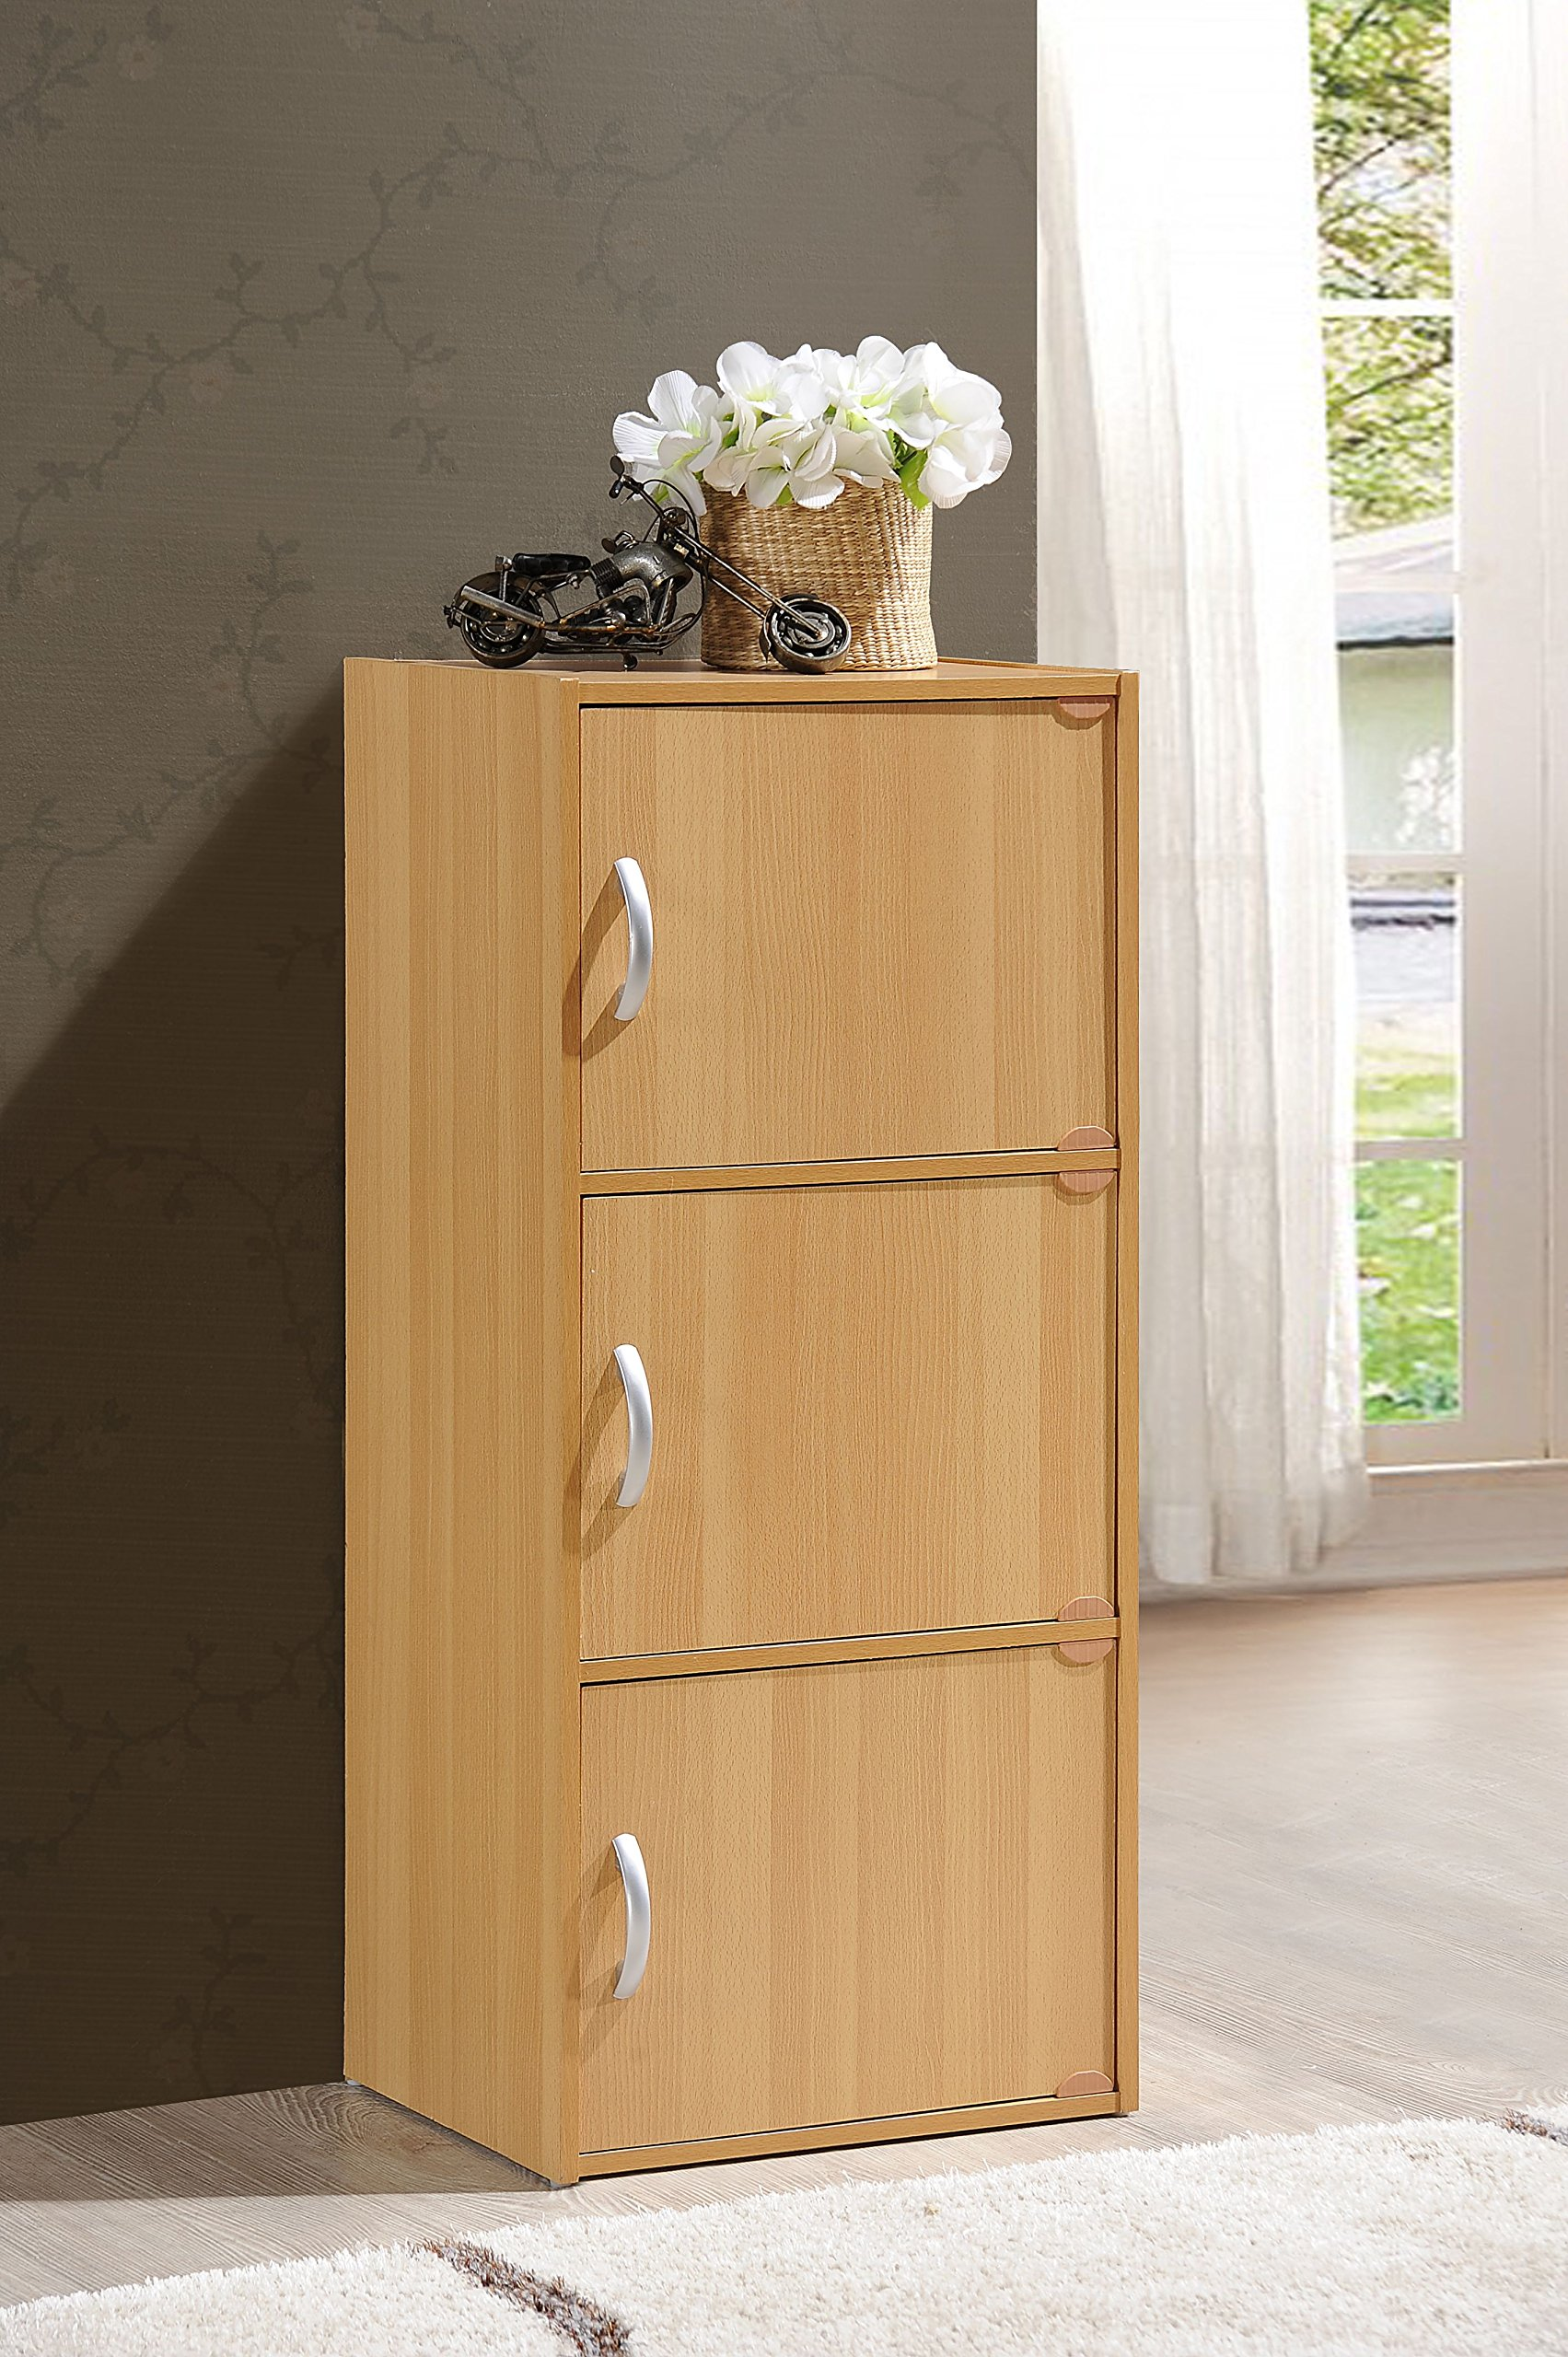 Hodedah 3 Door, Three Shleves, Enclosed Storage Cabinet, Beech by HODEDAH IMPORT (Image #2)